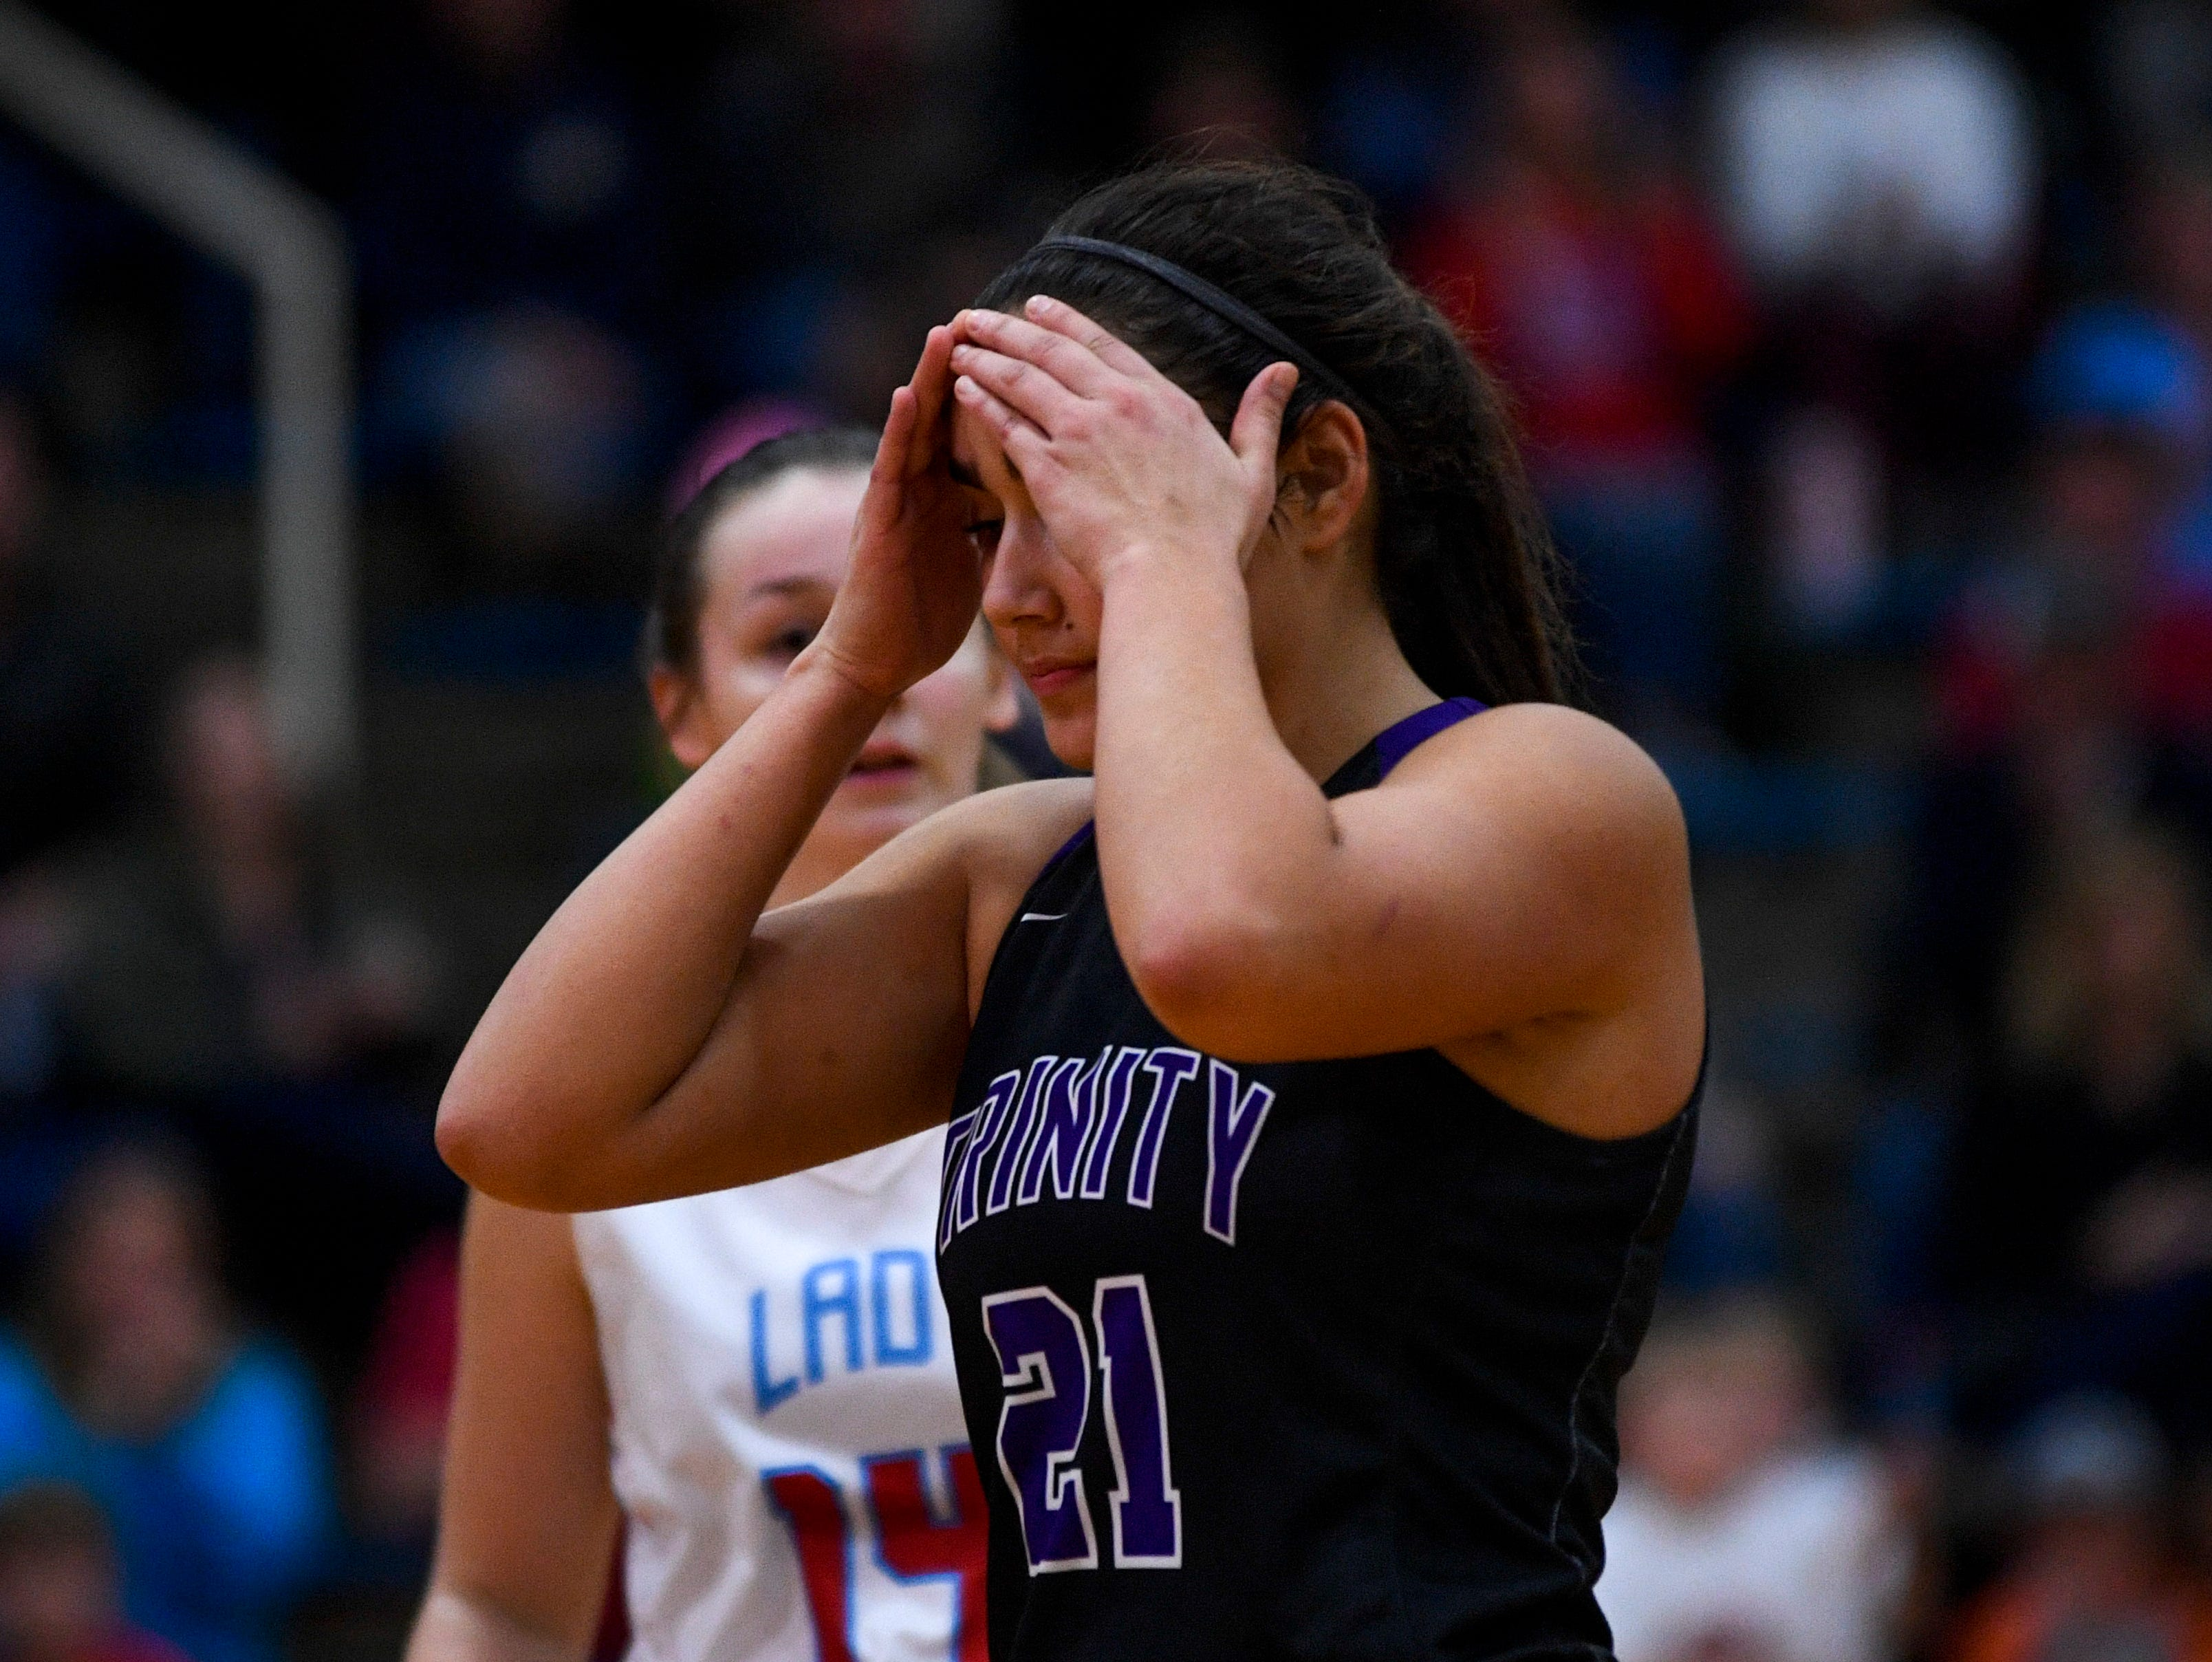 TCA's Emma Pagoaga (21) puts her hands over her forehead in distress after the ball flips possession during overtime in a TSSAA girls basketball game between Gibson County and Trinity Christian Academy at Gibson County High School in Dyer, Tenn., on Friday, Jan. 11, 2019.